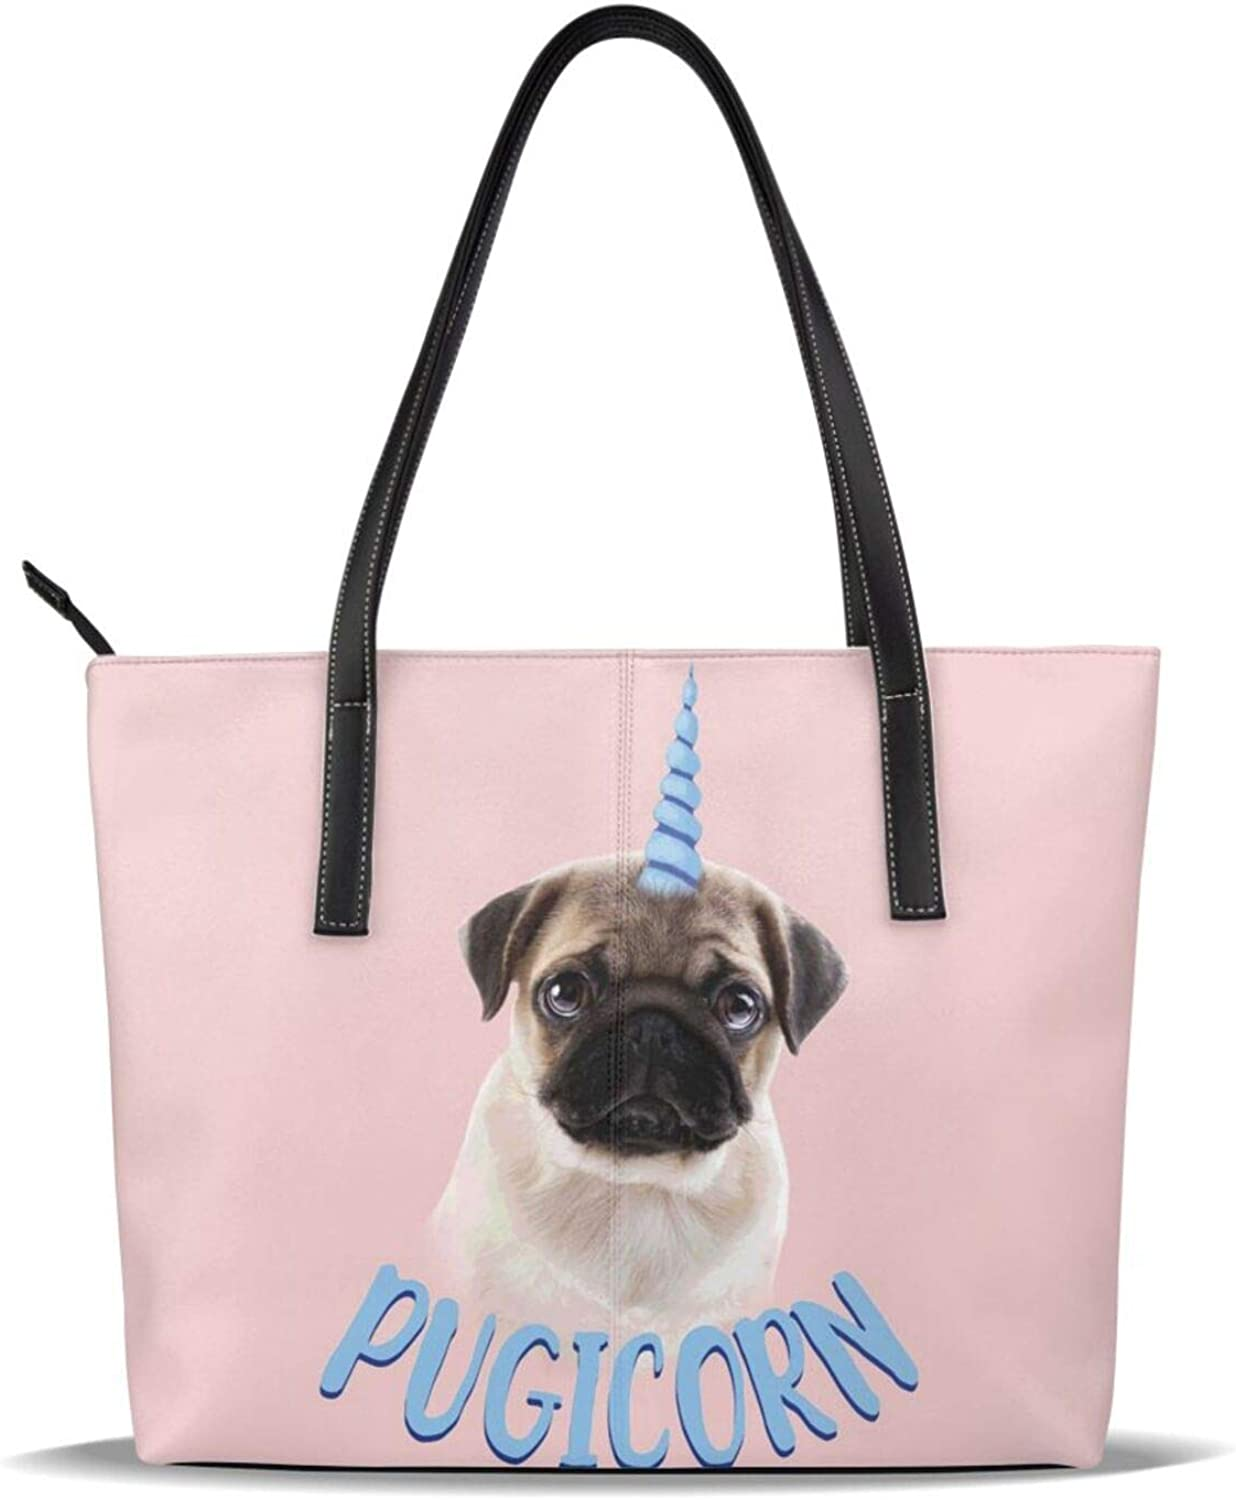 Pink Unicorn Pug Trust Funny Cute Leather Printed Pattern Large discharge sale Dogicorn Pu